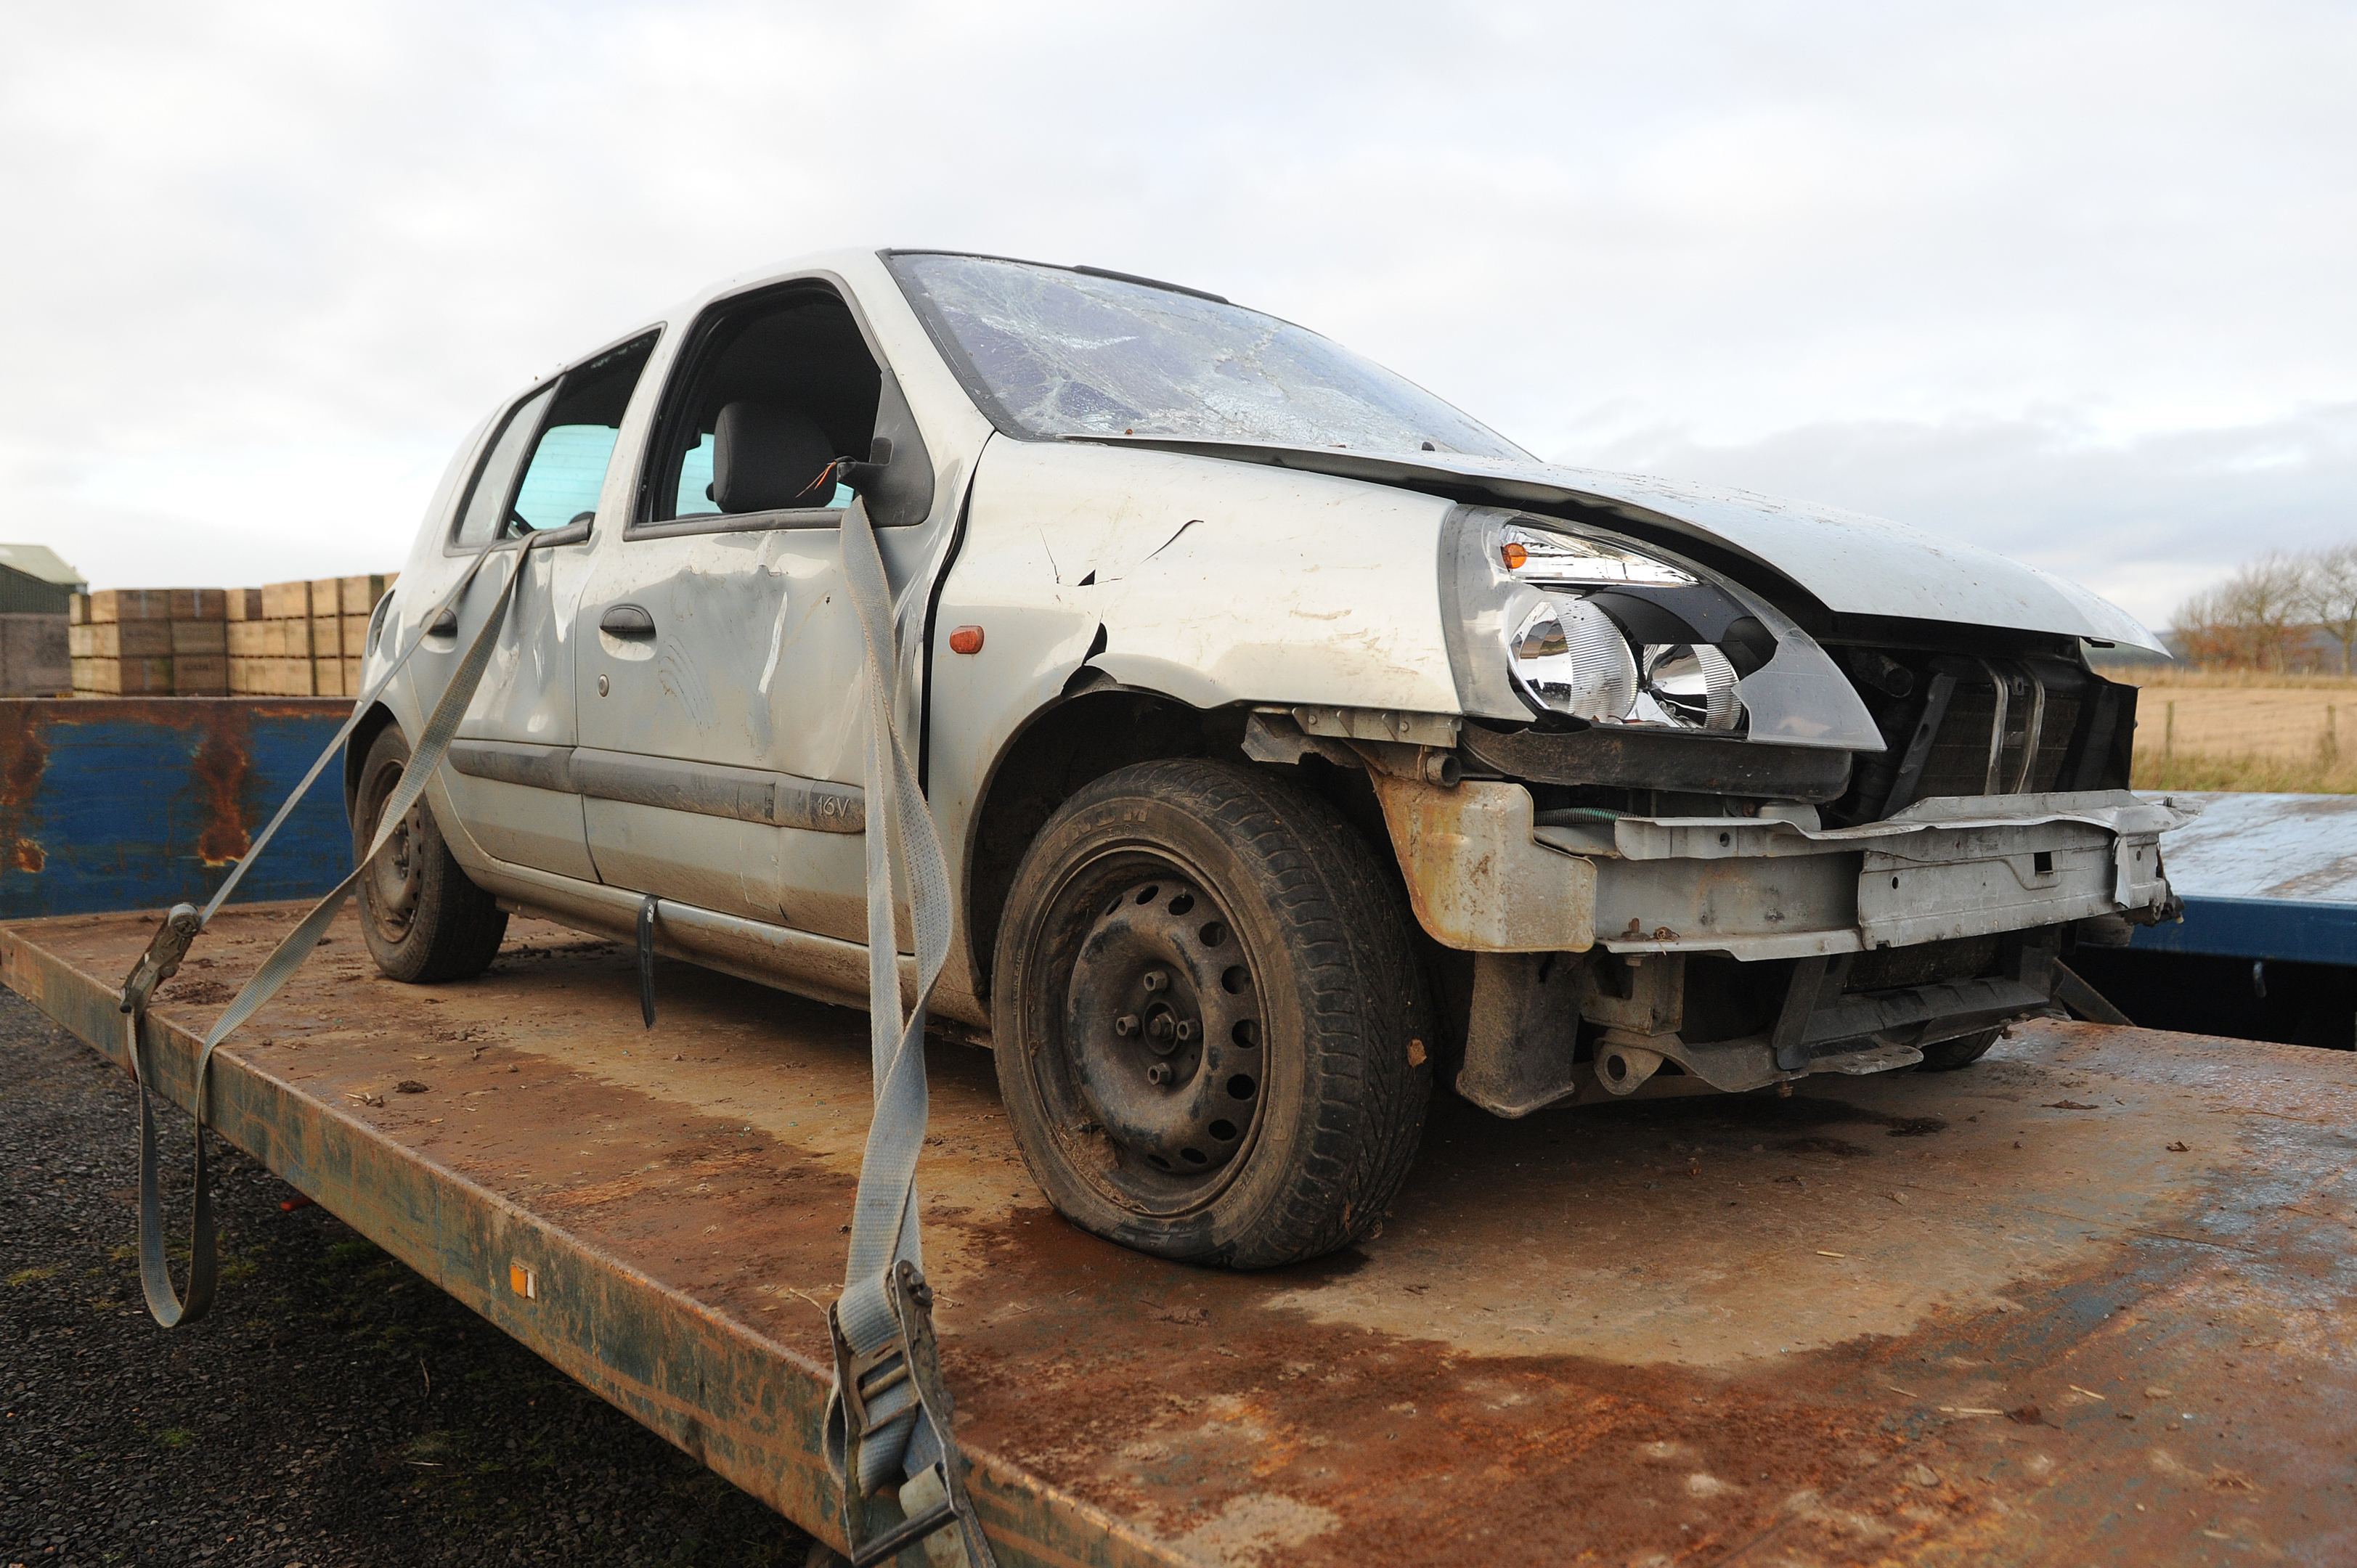 The wrecked vehicle.